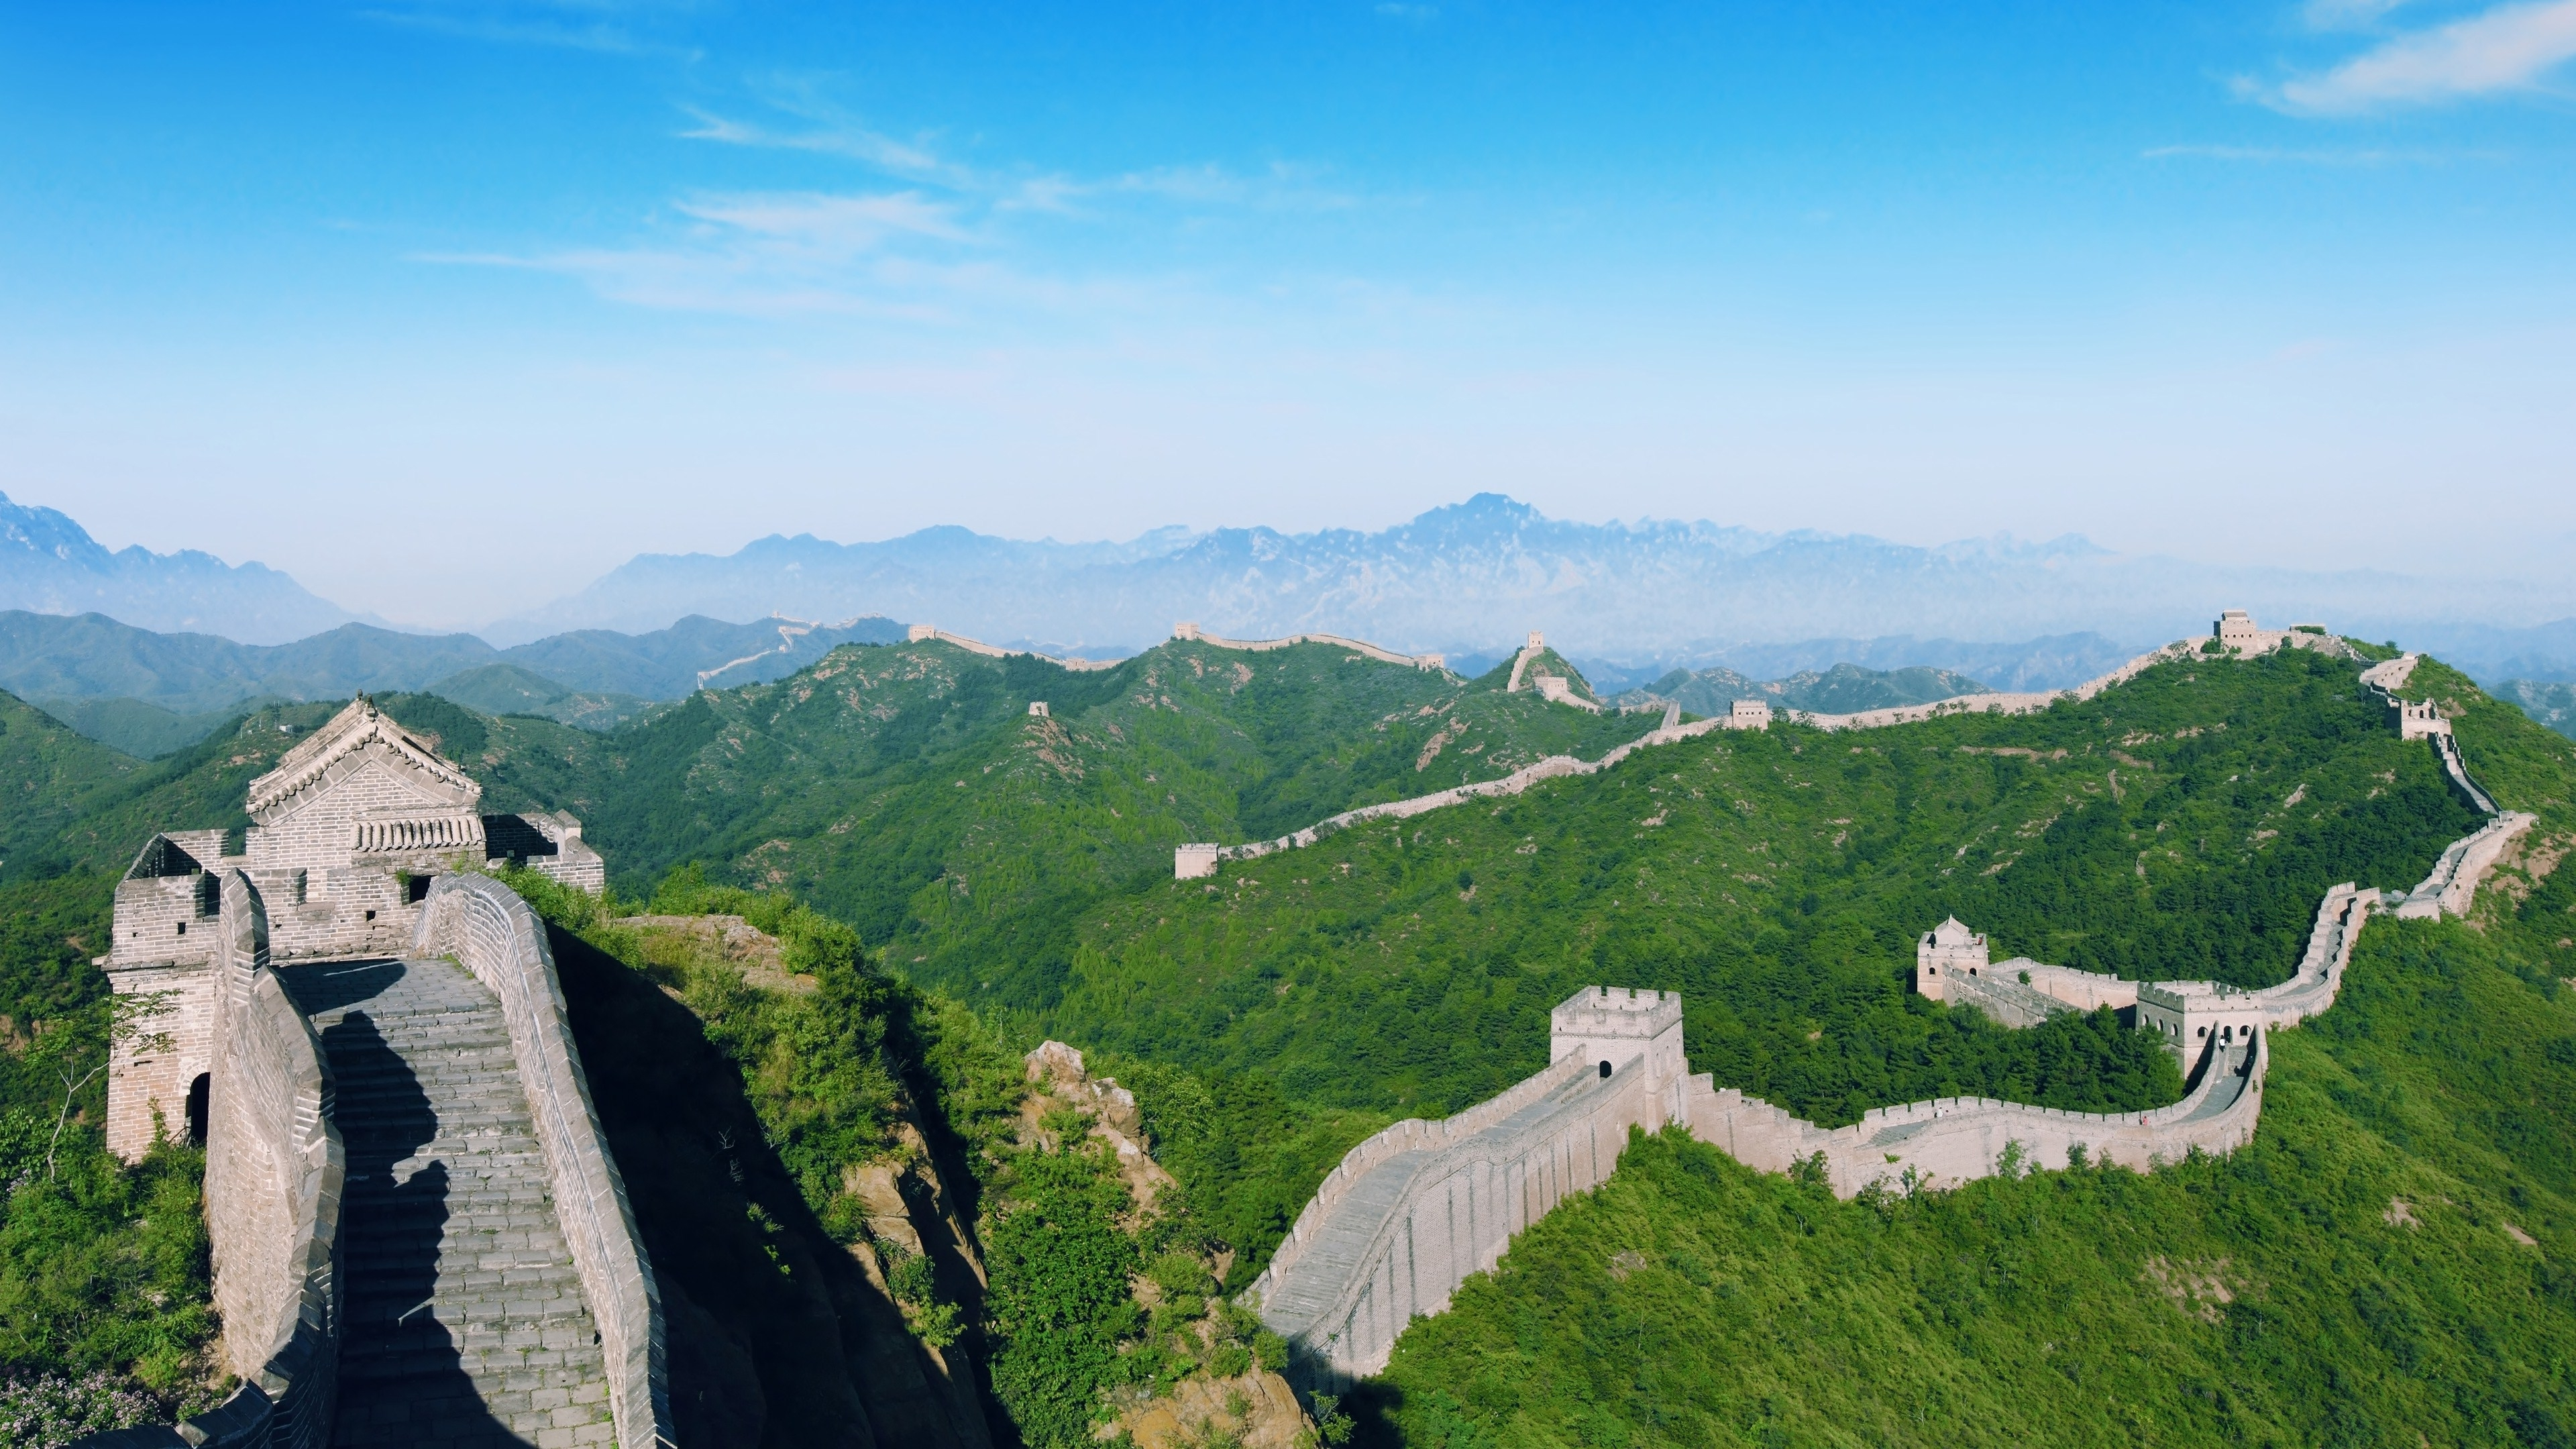 56 Great Wall Of China Hd Wallpapers (View 3 of 15)